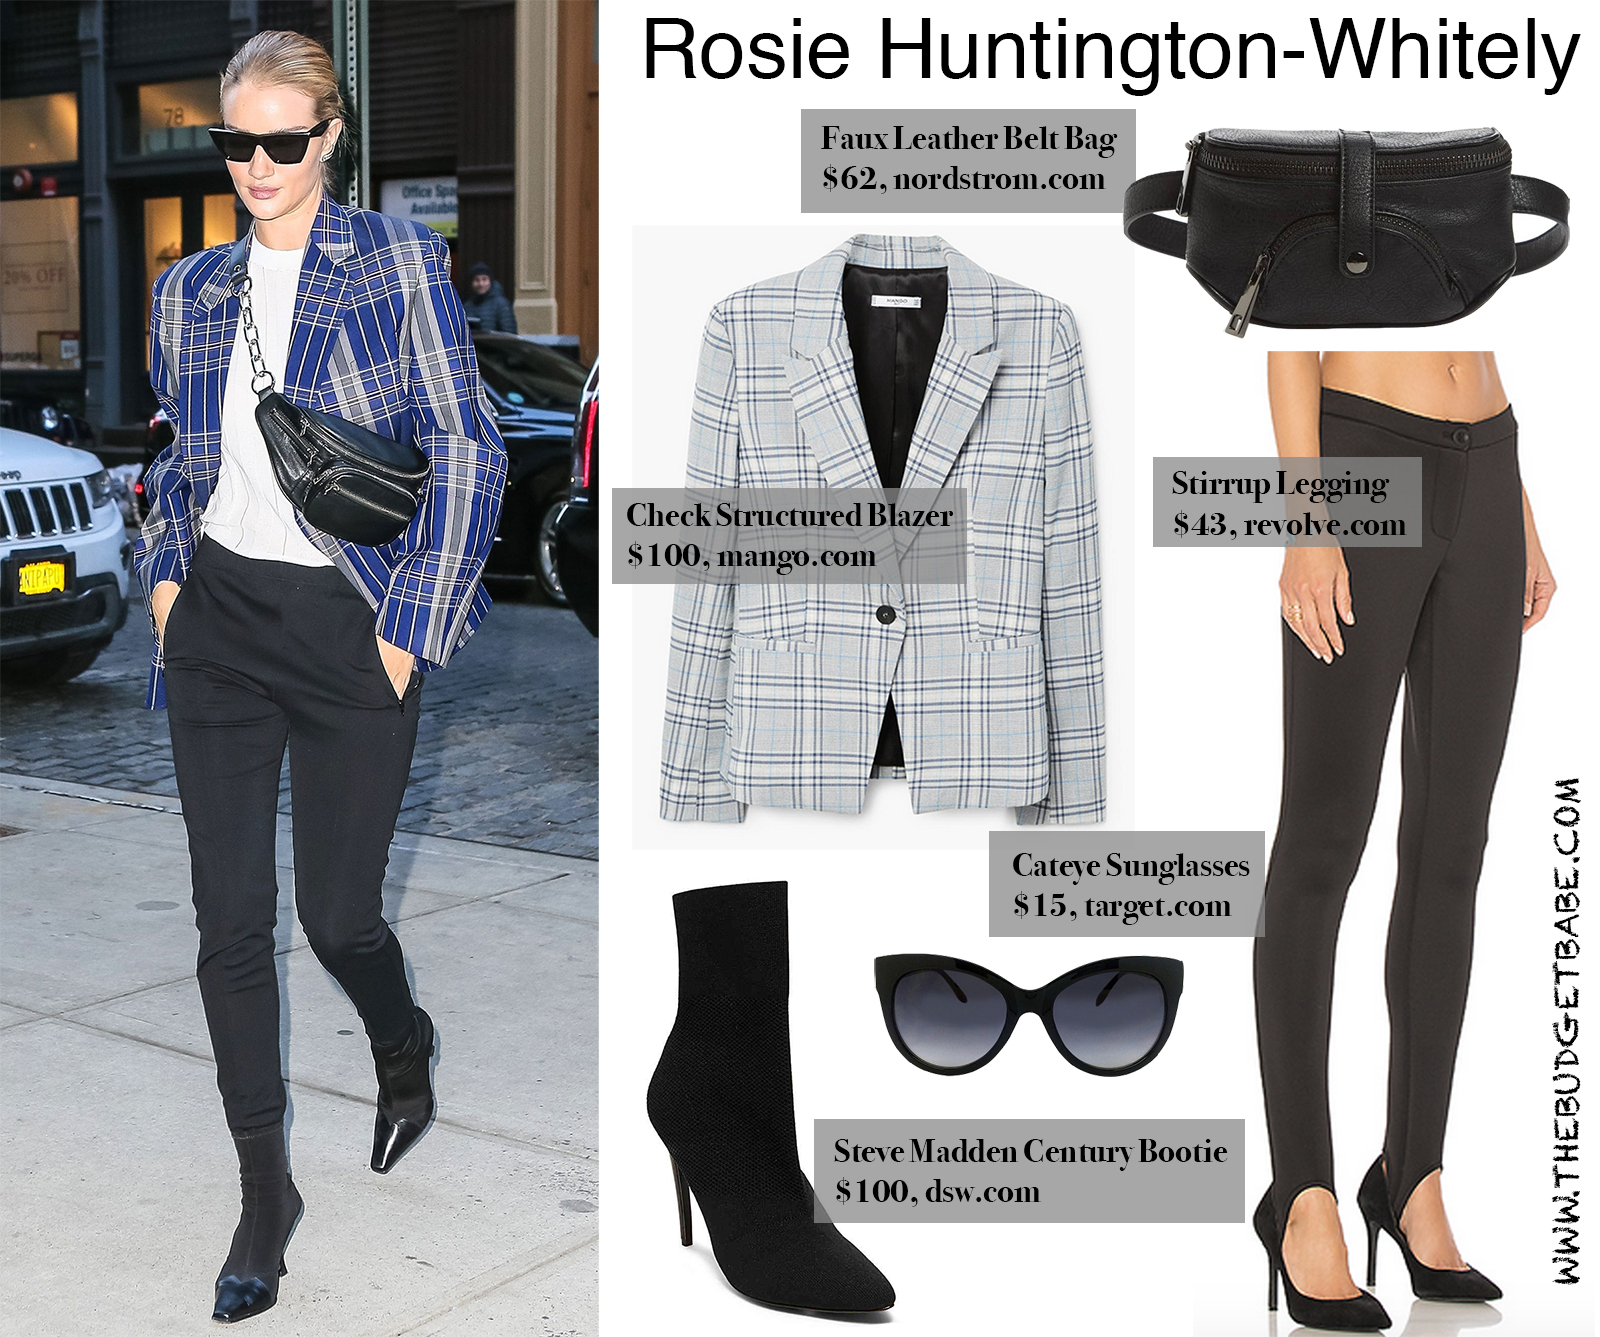 Rosie Huntington-Whitely Check Blazer and Belt Bag Look for Less